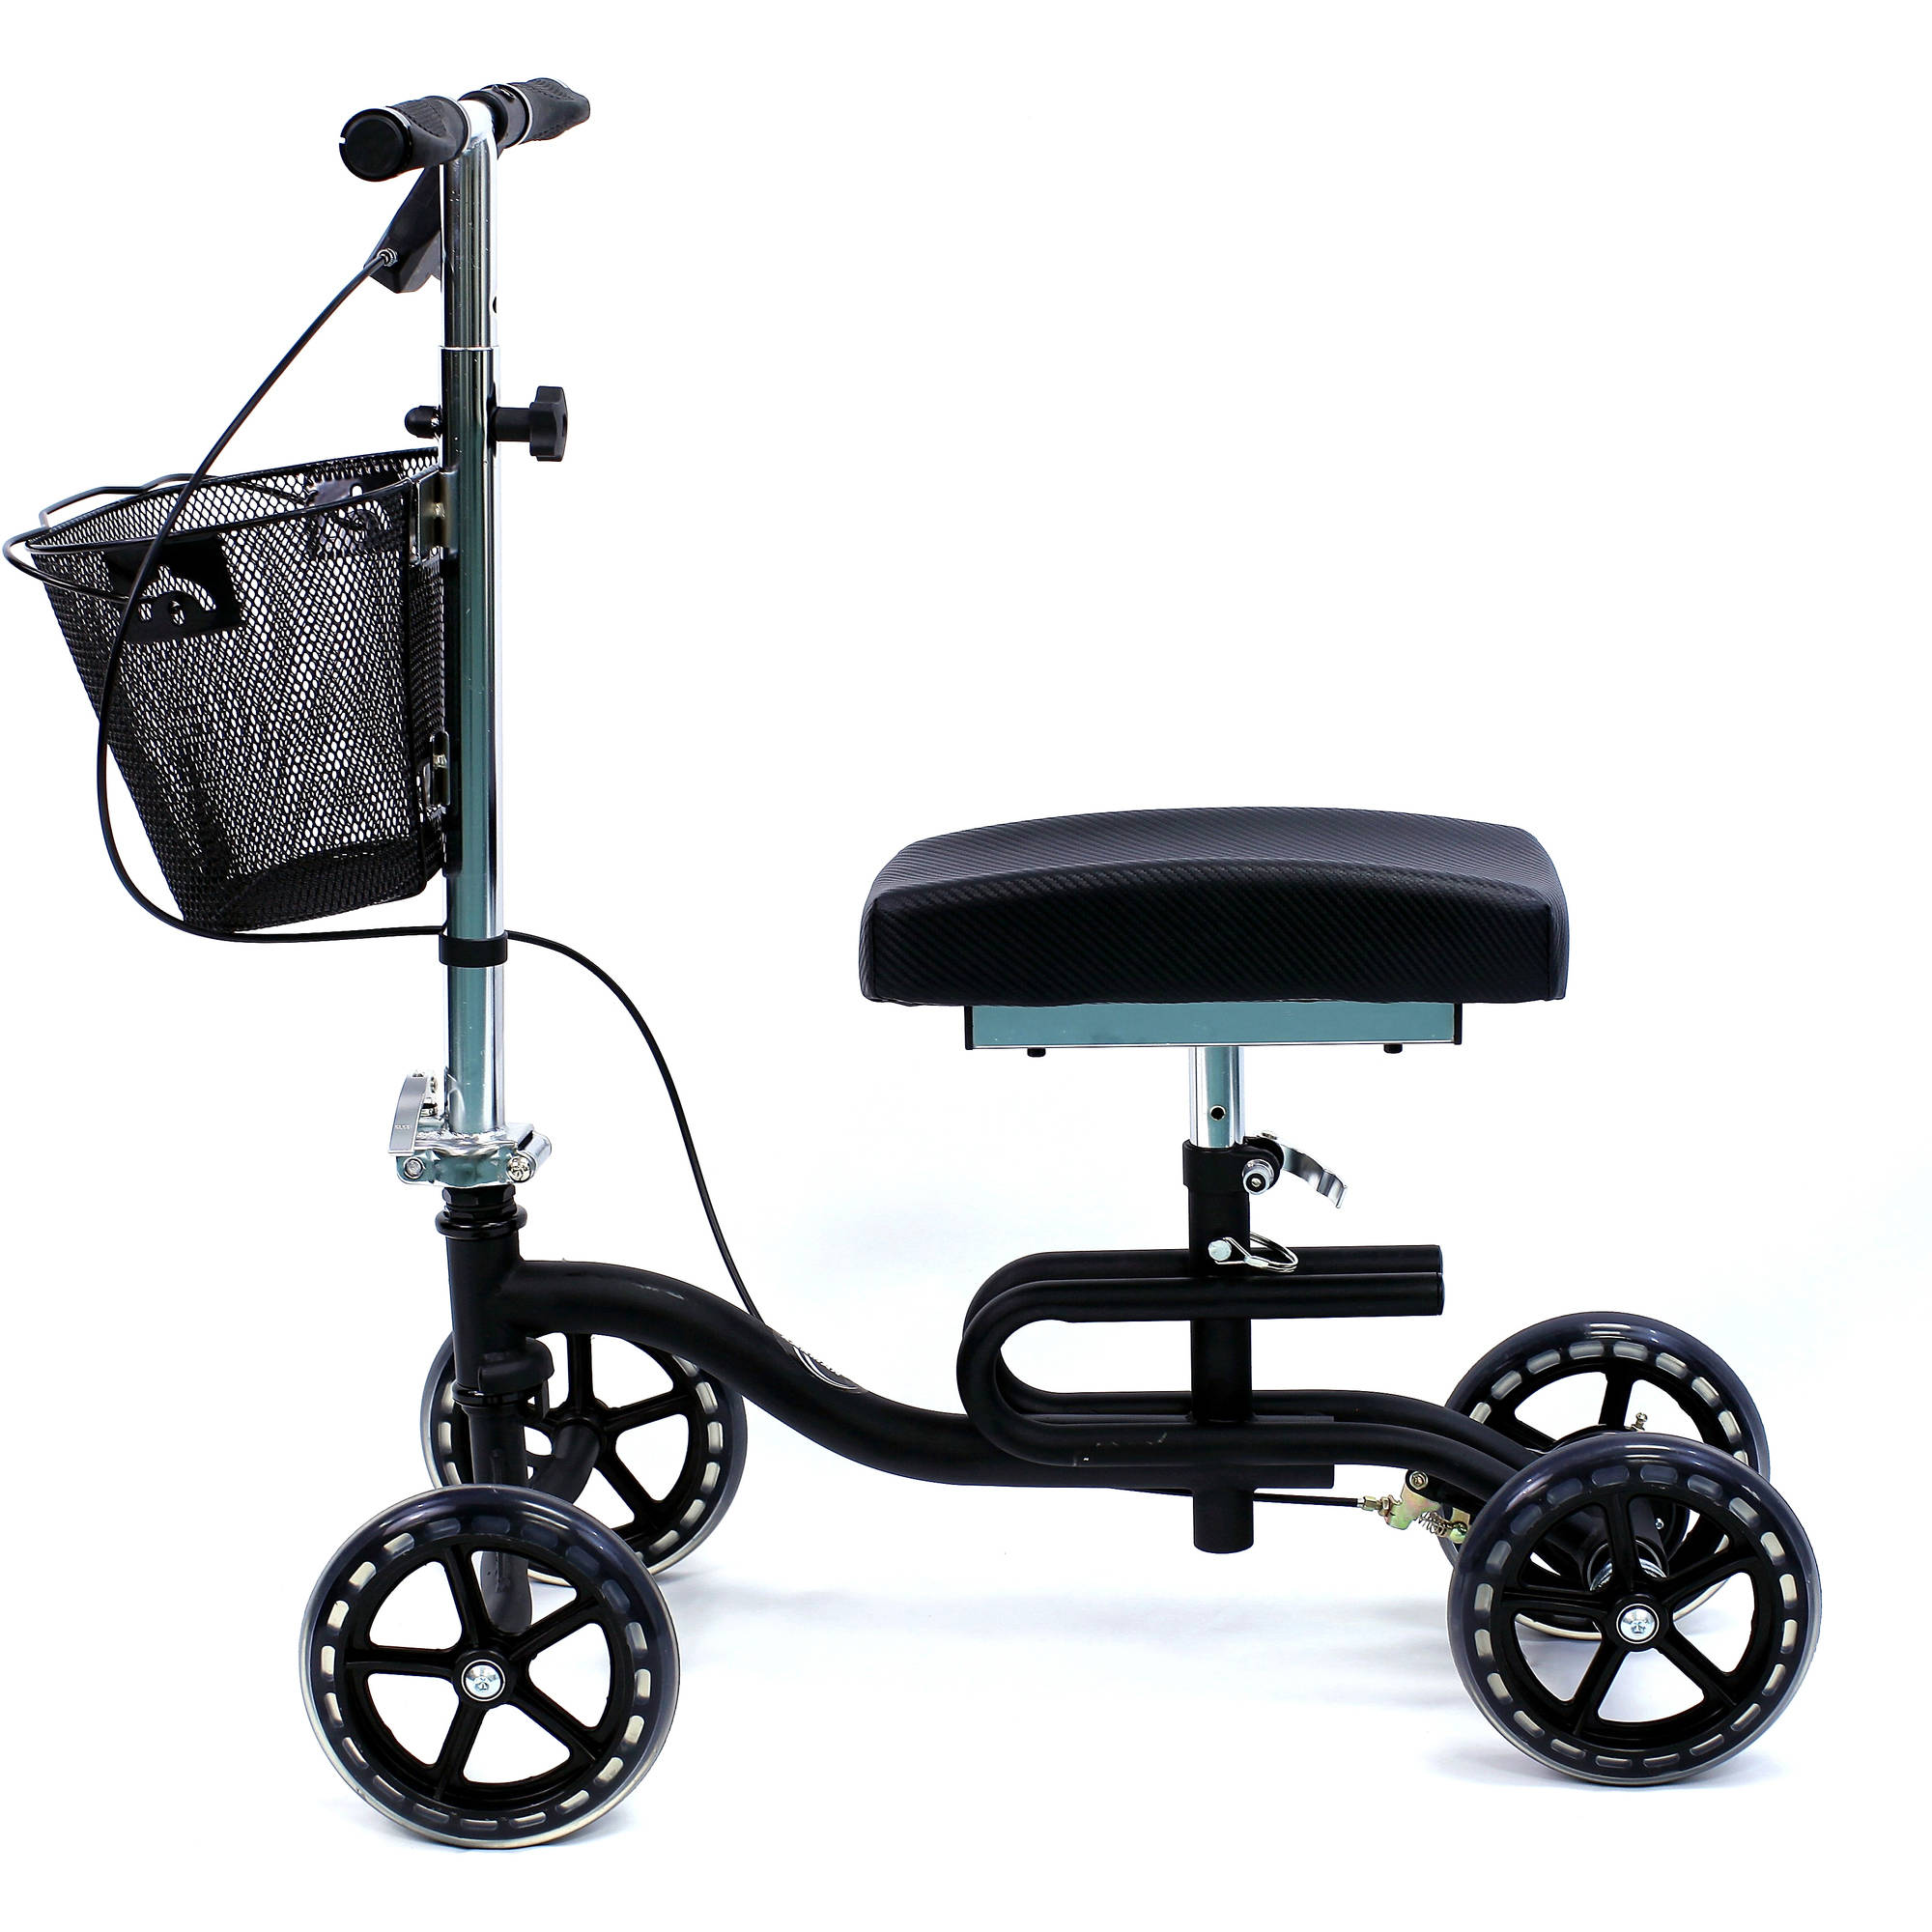 Karman KW-100 Luxury Knee Walker with Basket and Knee Pad, Black